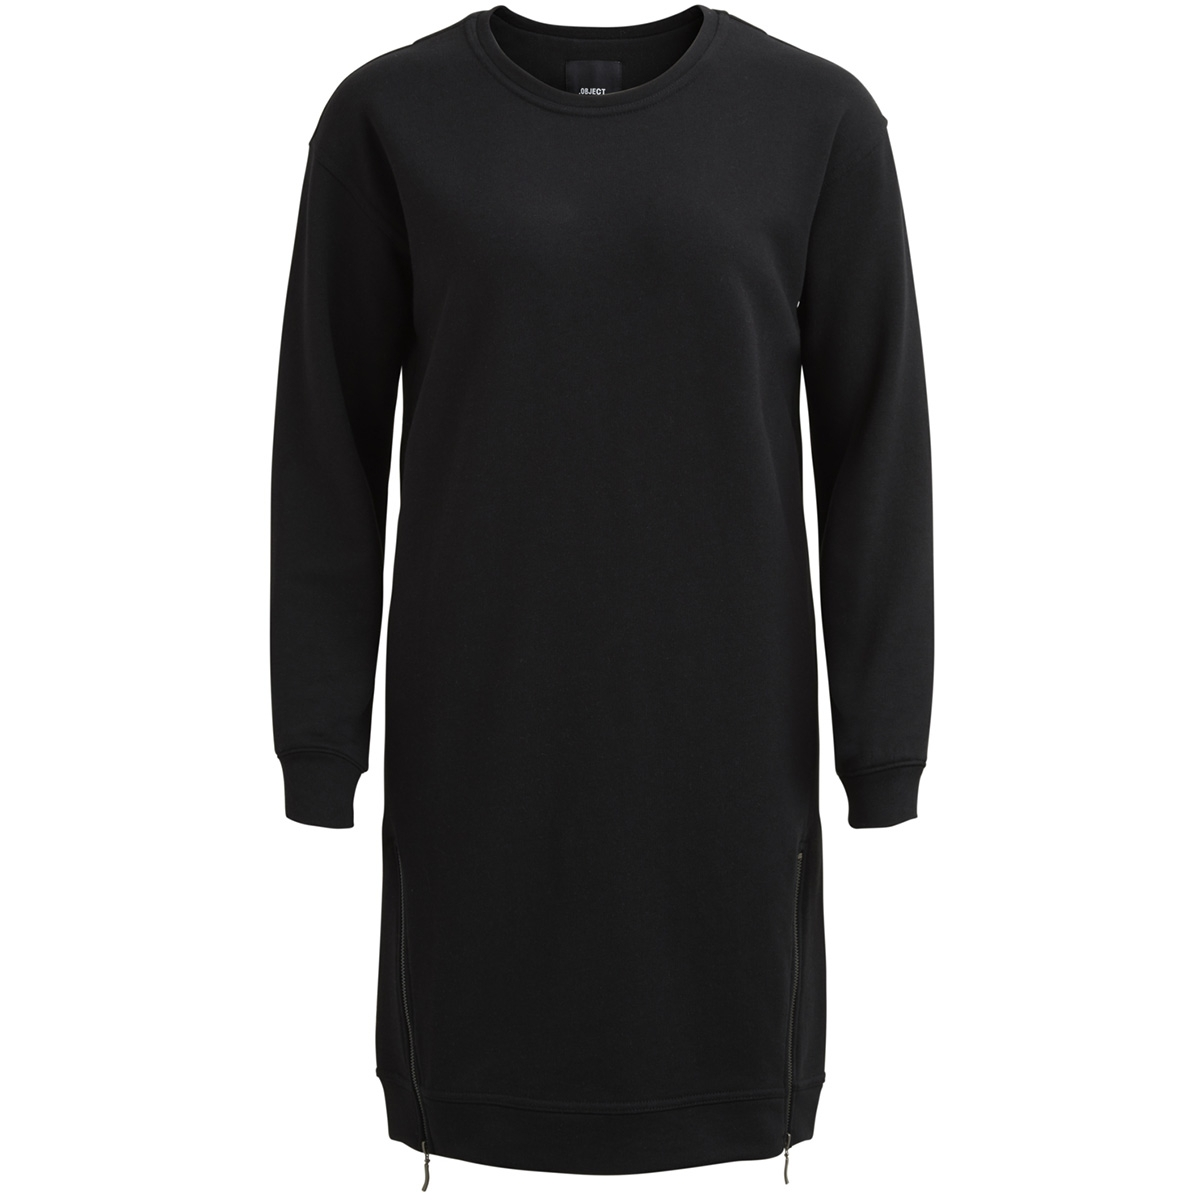 objida sweat dress 94 23025726 object jurk black